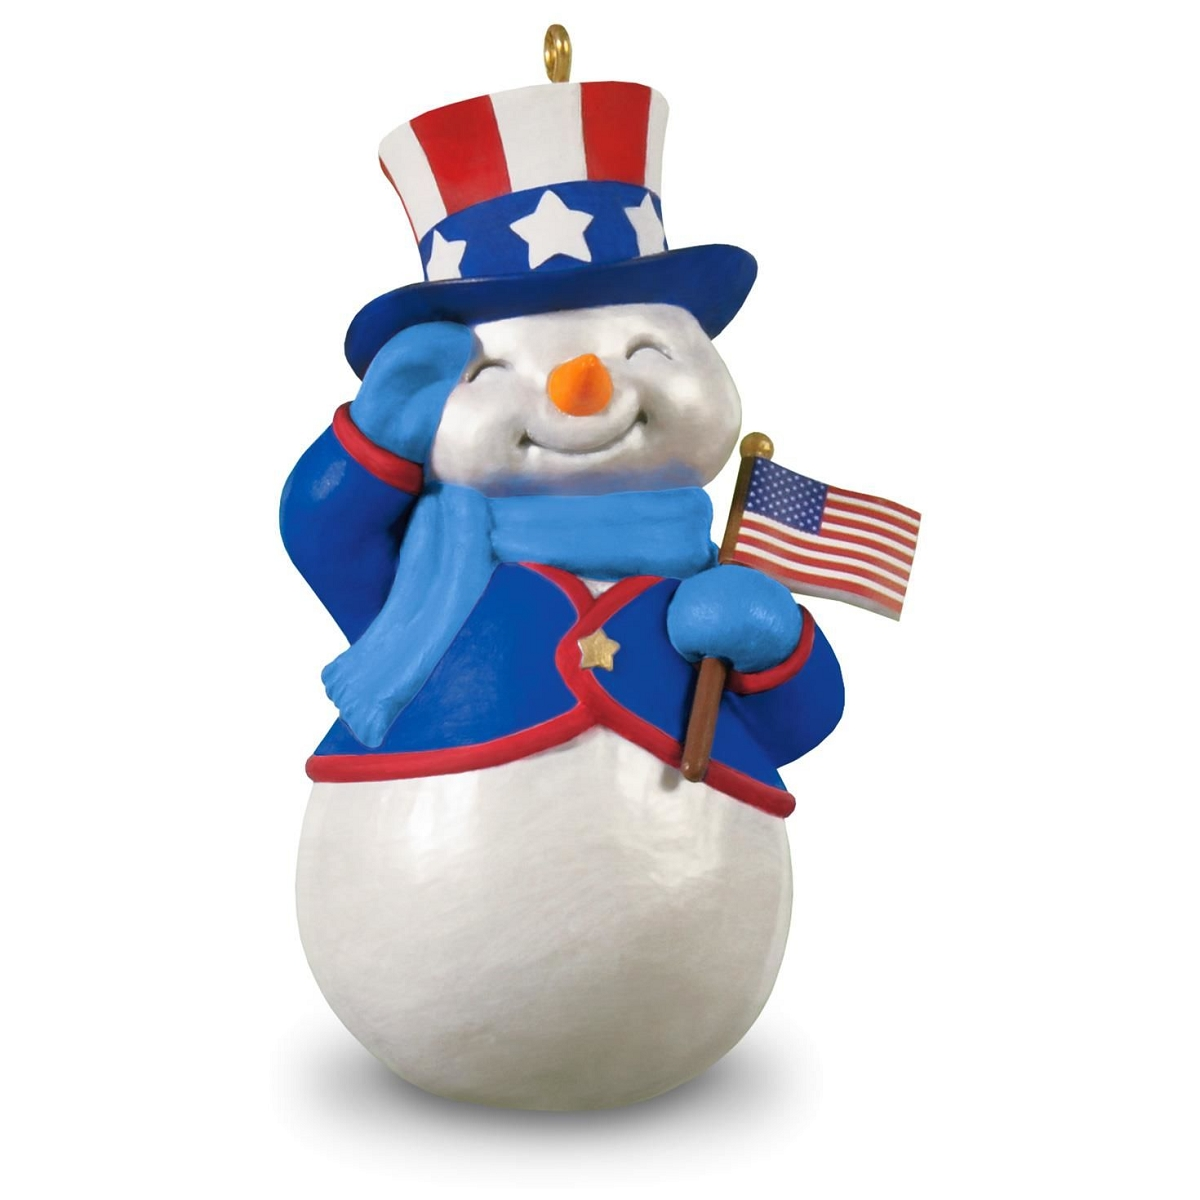 2016 Patriotic Snowman Hallmark Keepsake Ornament